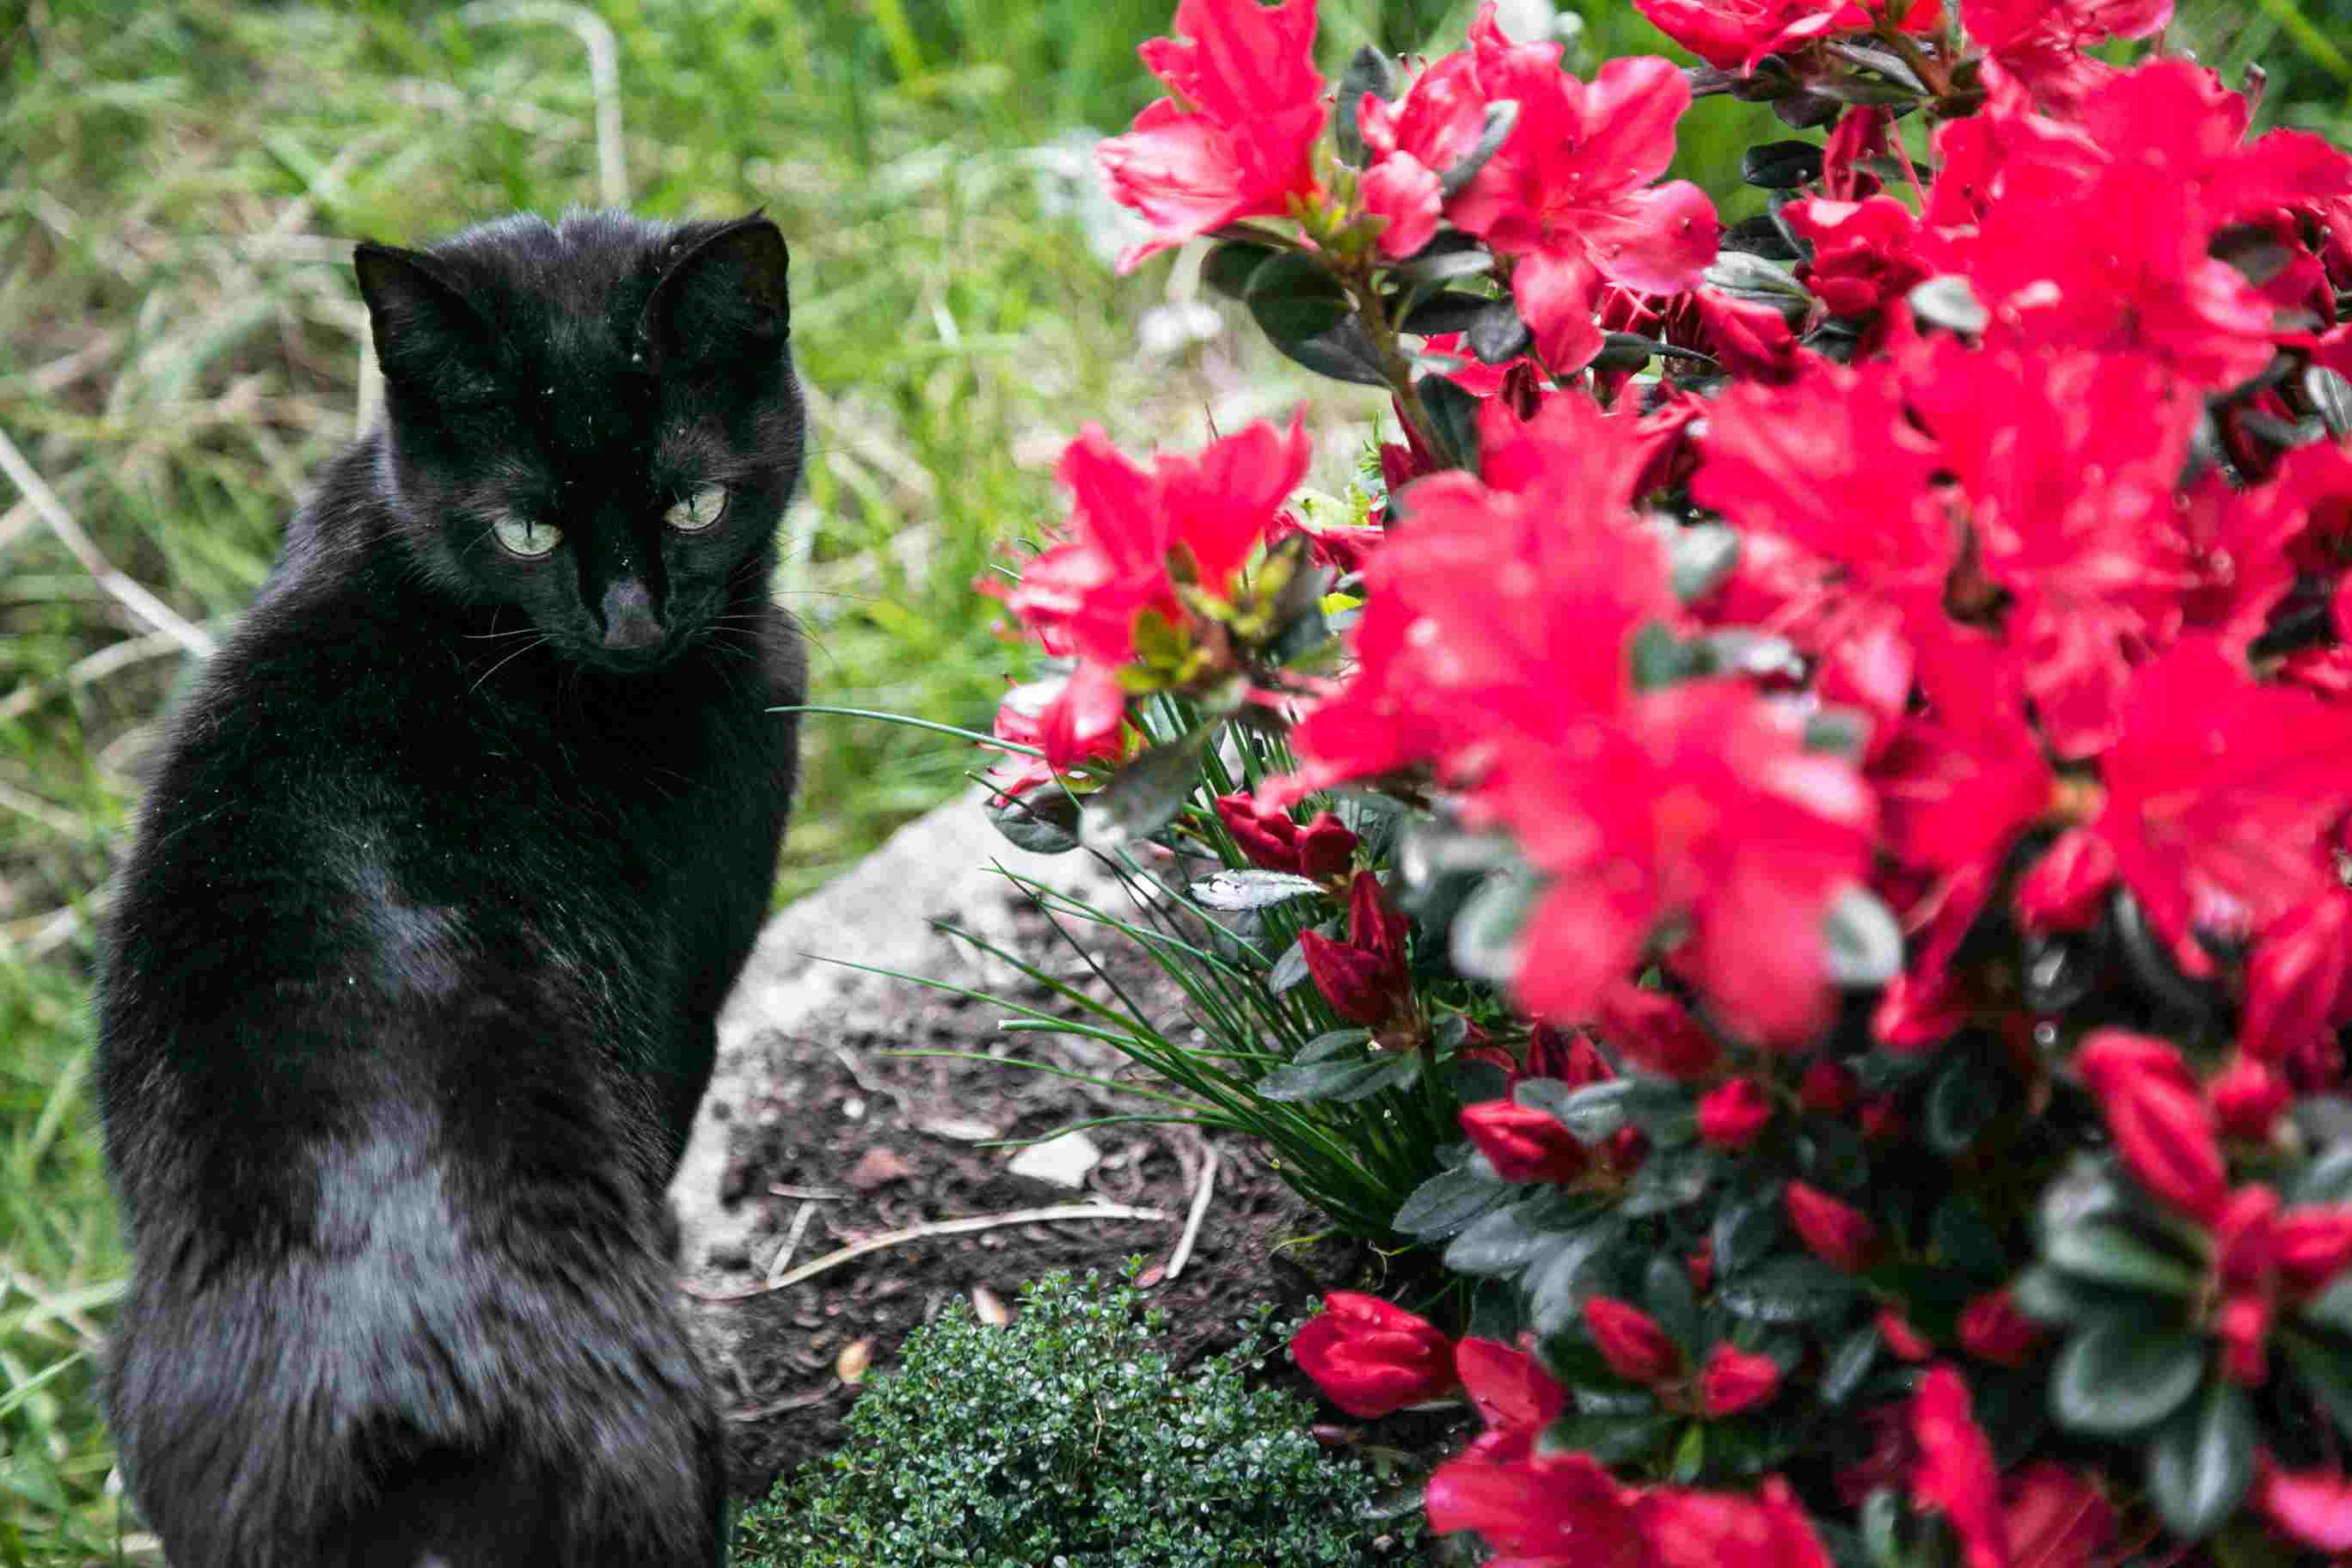 Close-Up Of Black Cat In Garden